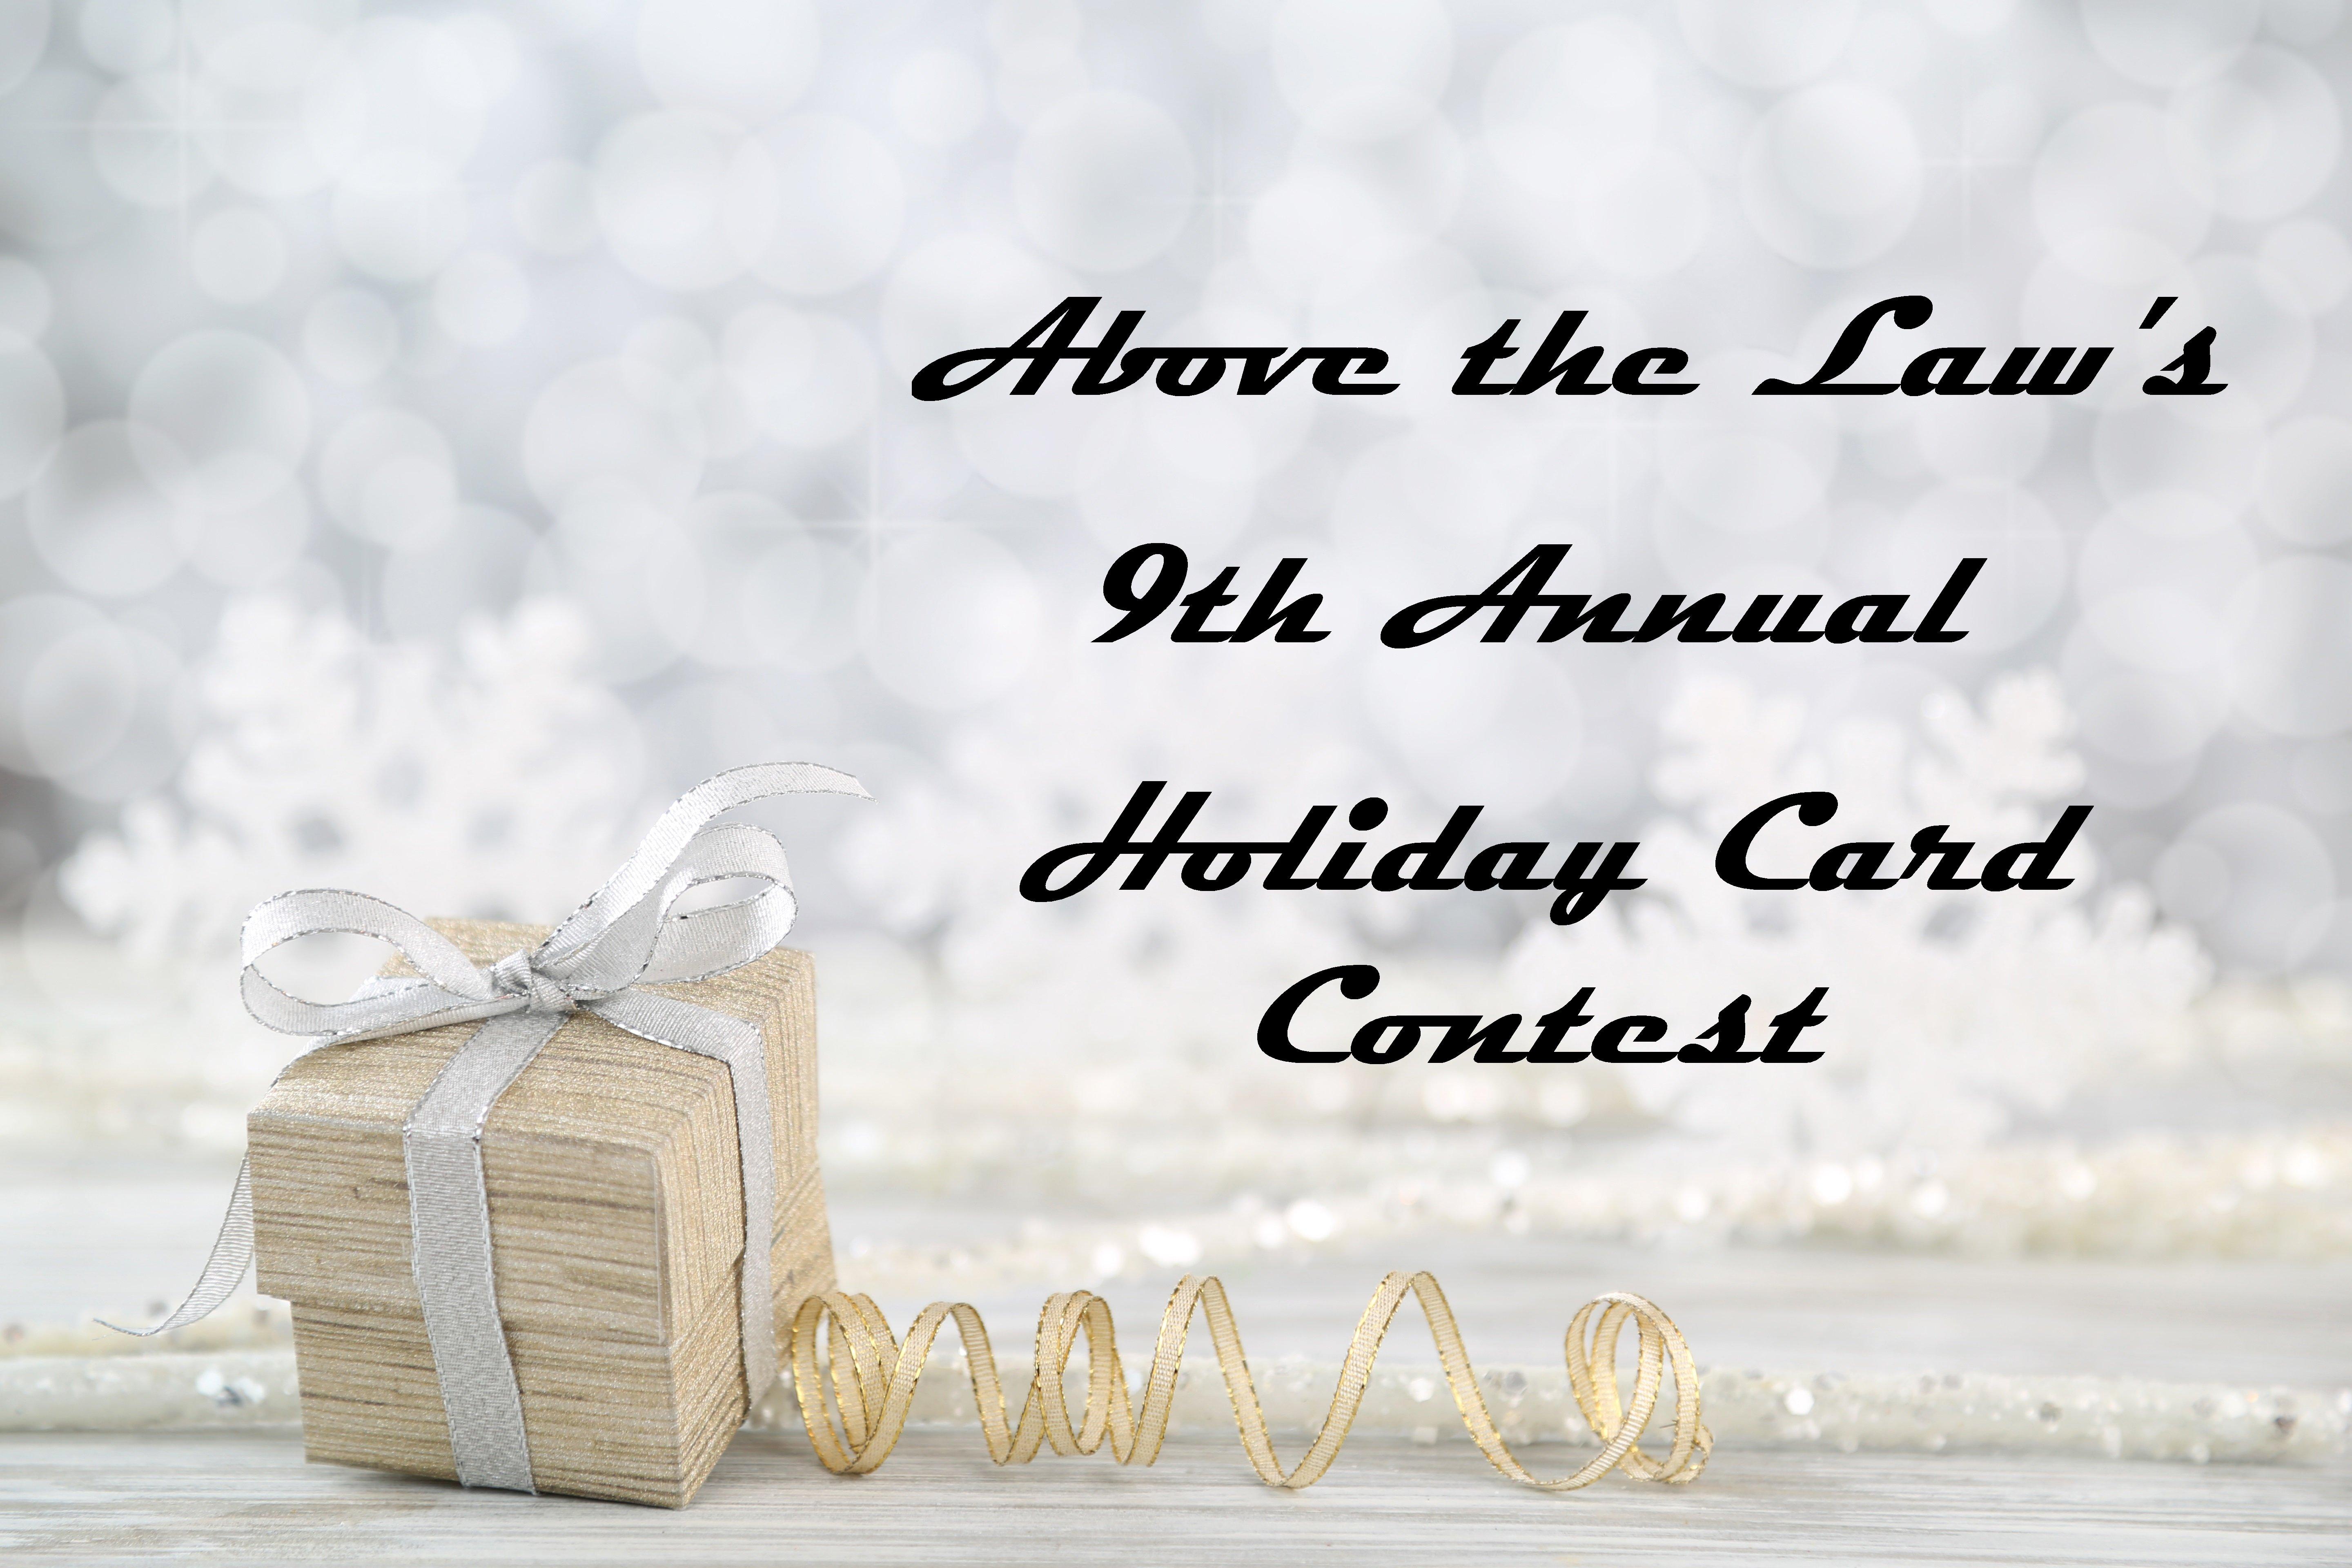 Atl Holiday Card Contest The Finalists 2017 Above The Law